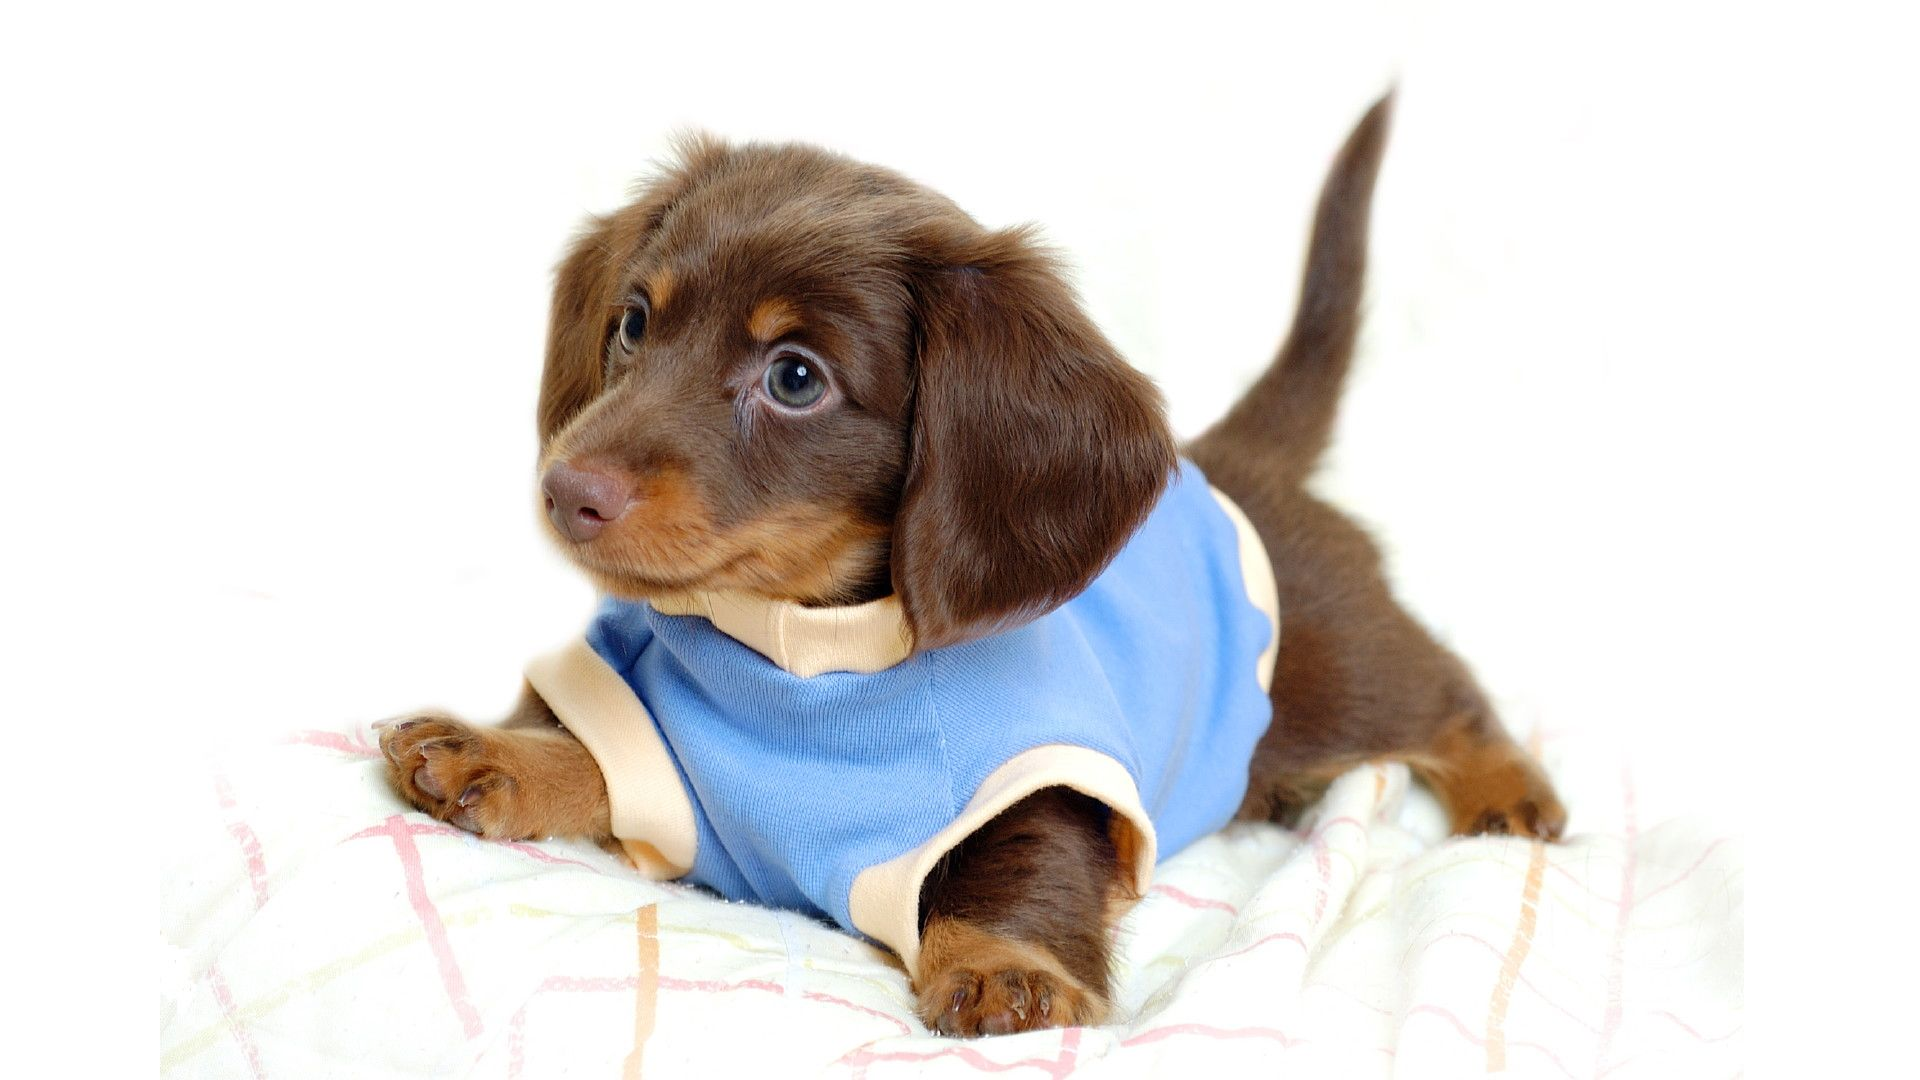 Cute Animal Wallpaper Animal Wallpapers Wholles Cute Dogs